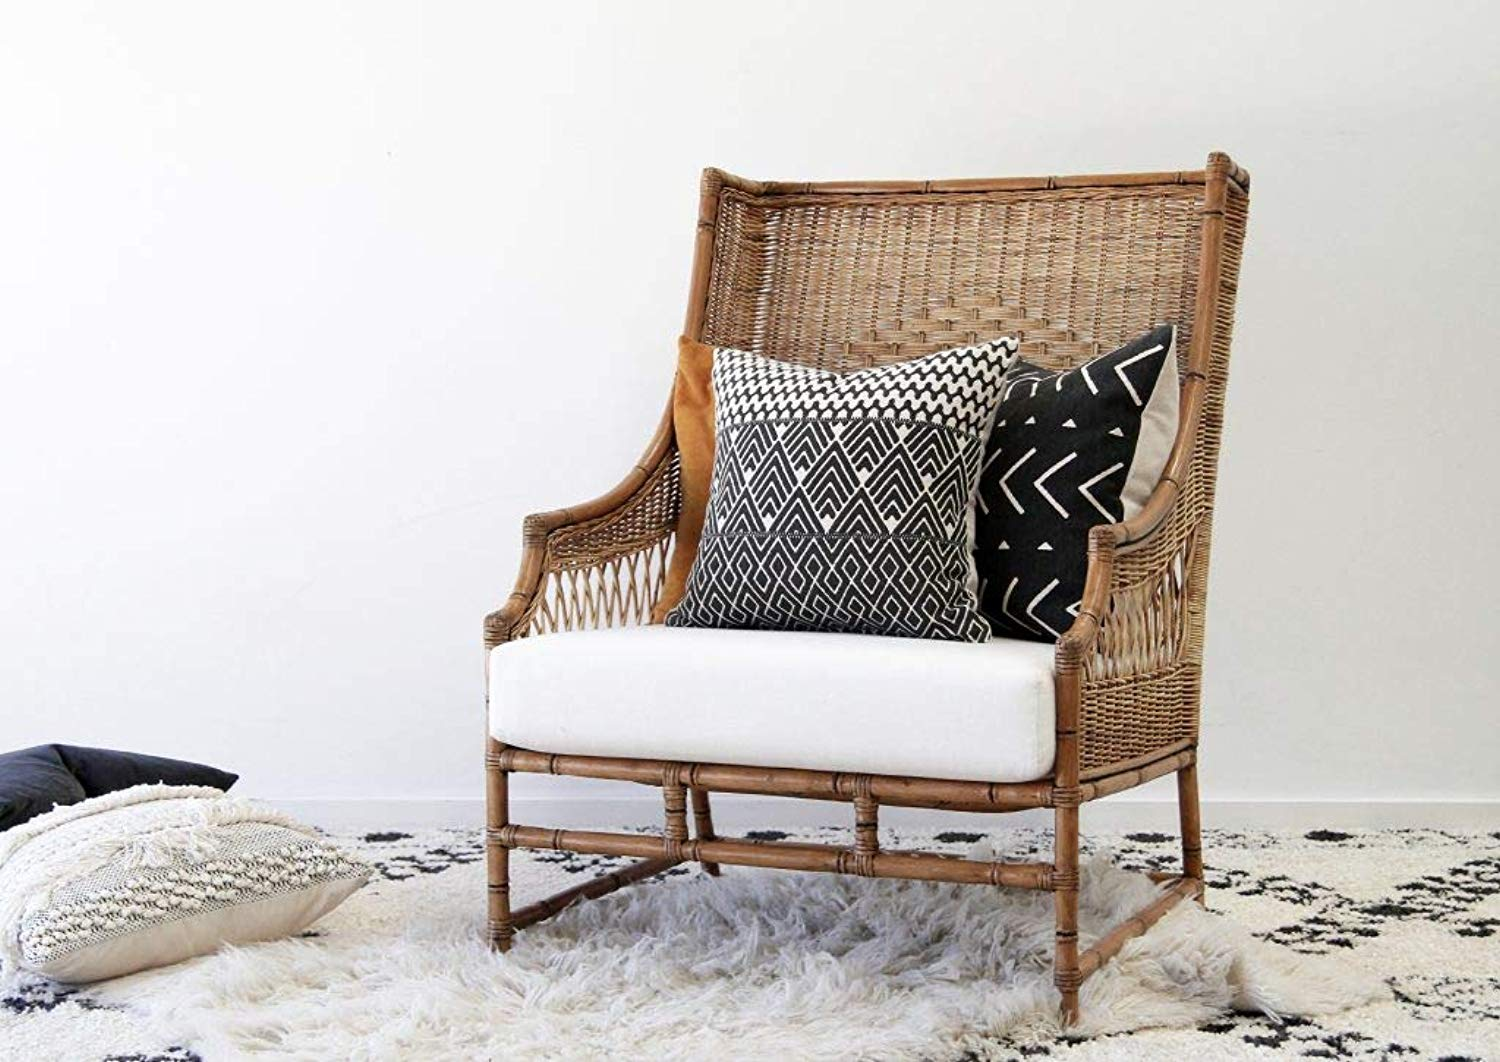 IRA Armchair for Bed rooms - IRA Furniture